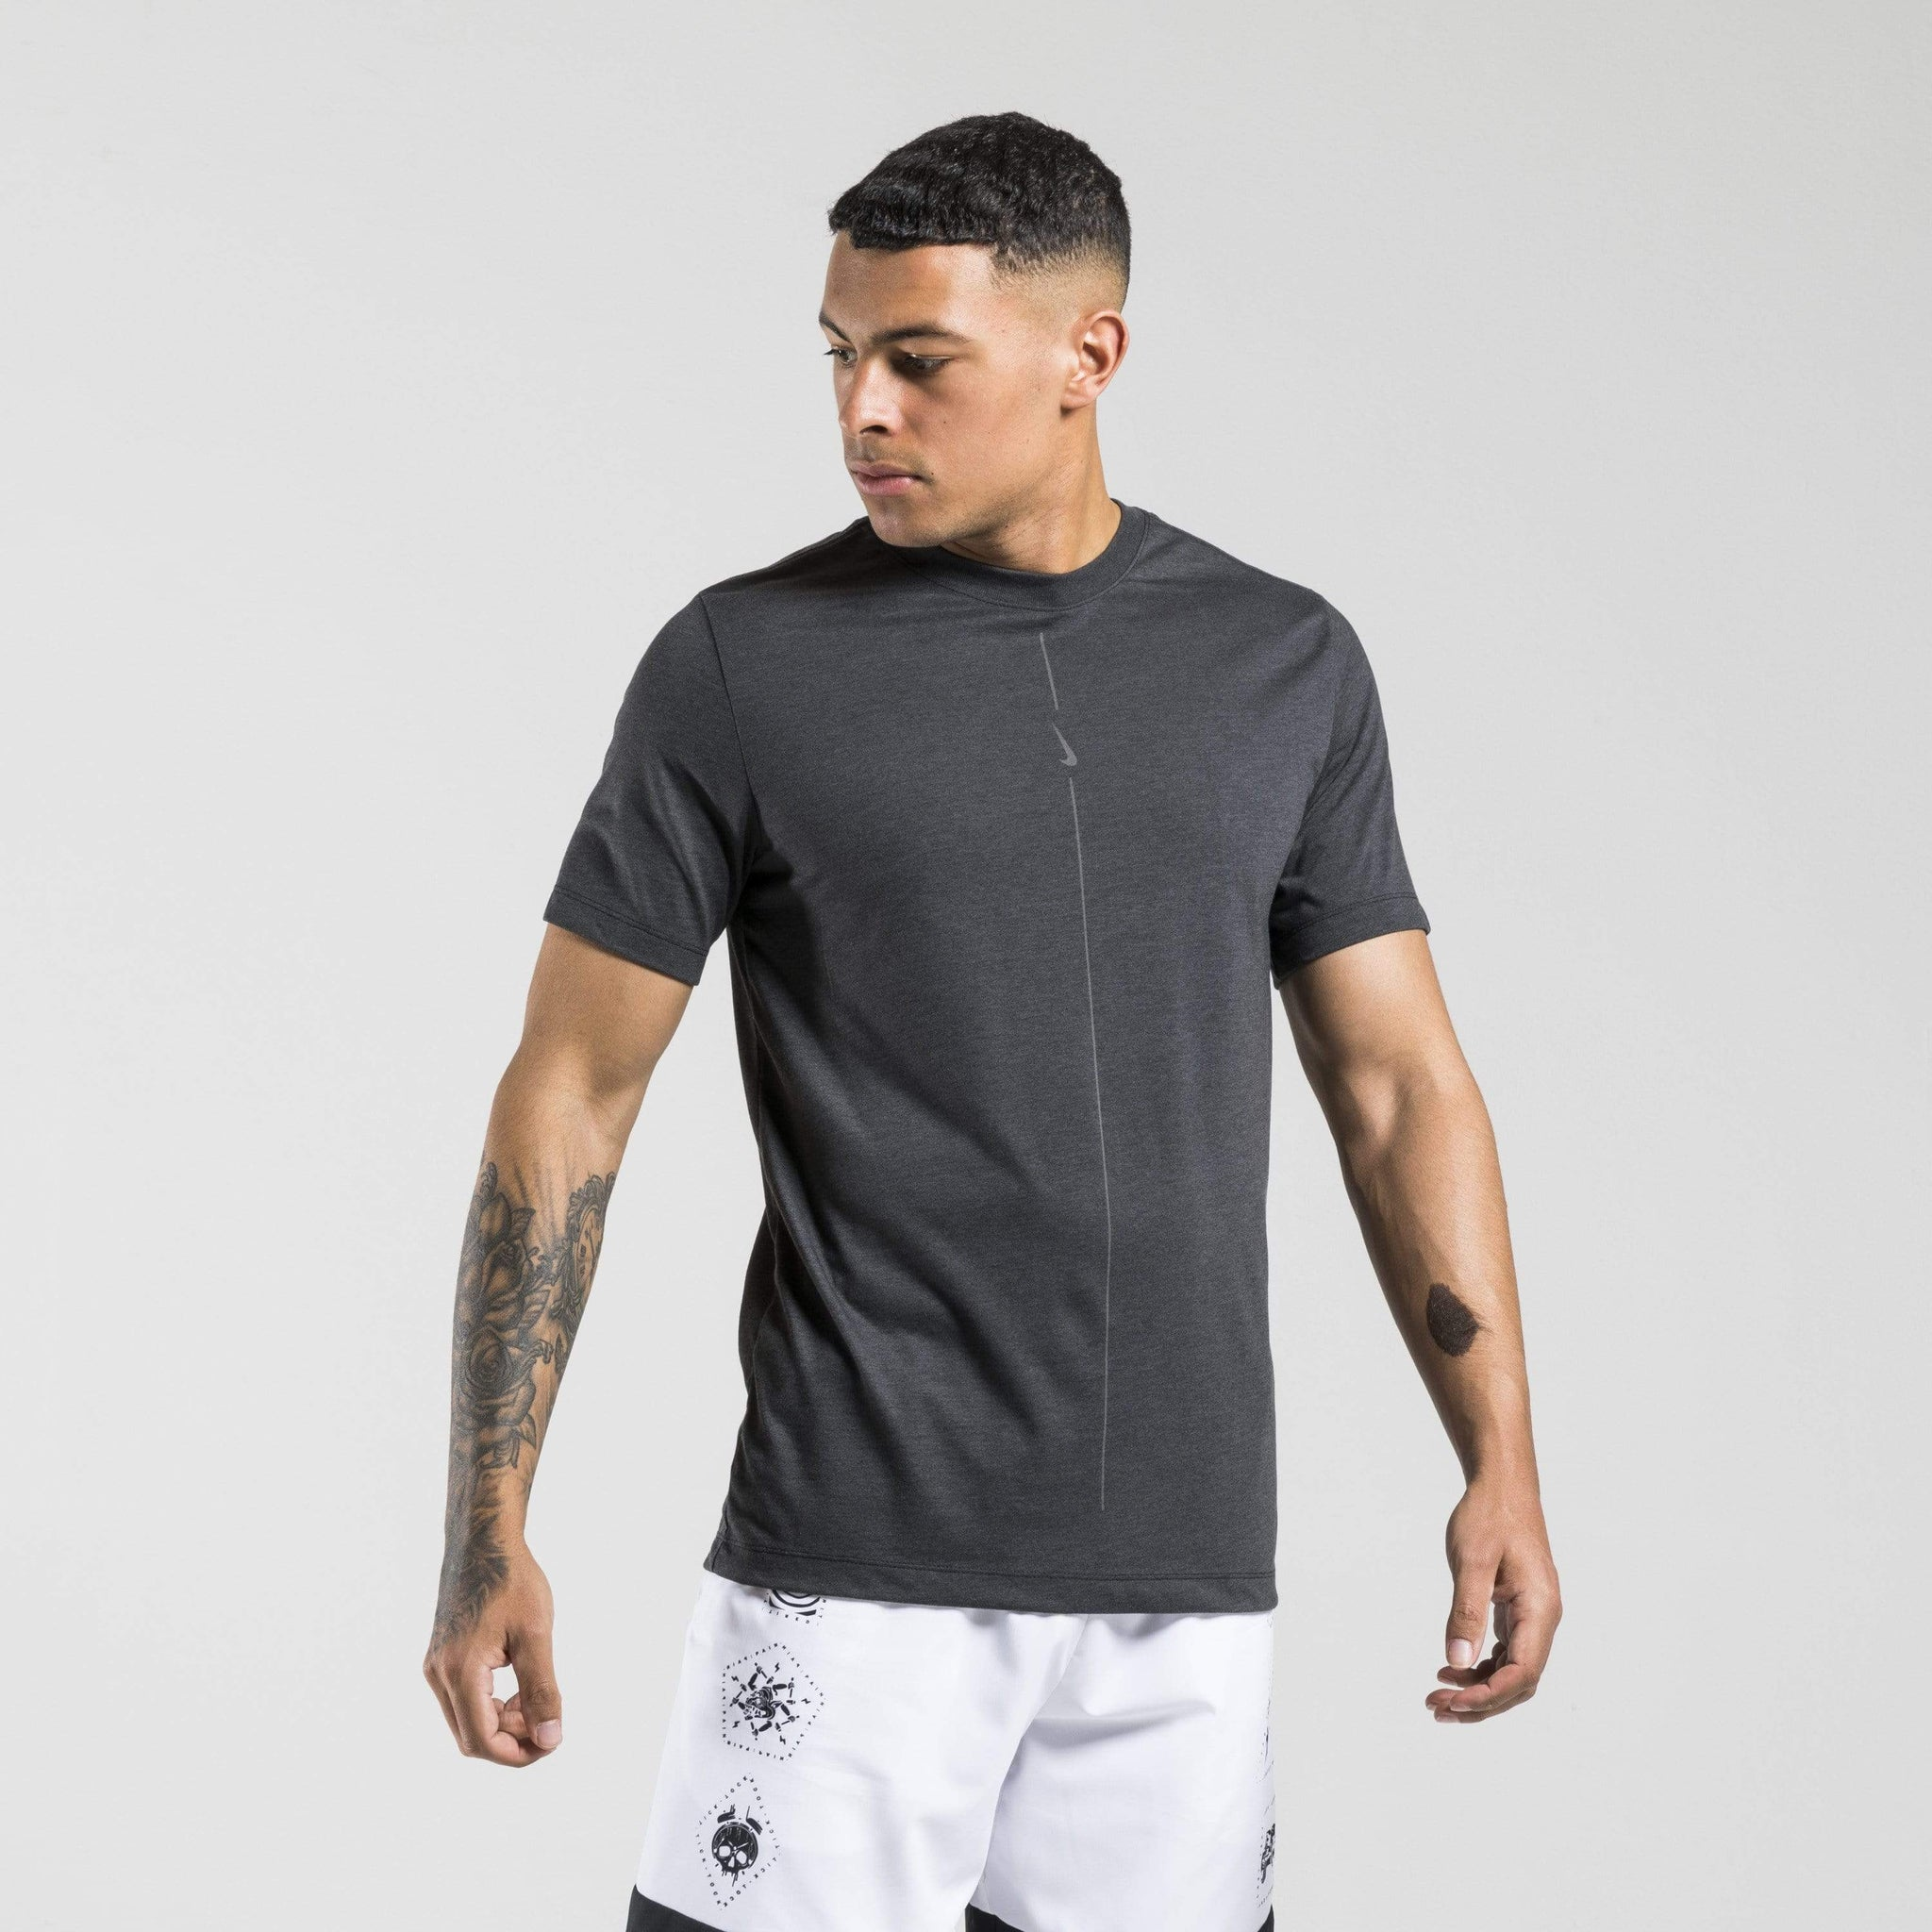 Nike T-shirts Nike Soft Blend Dri-FIT T-Shirt